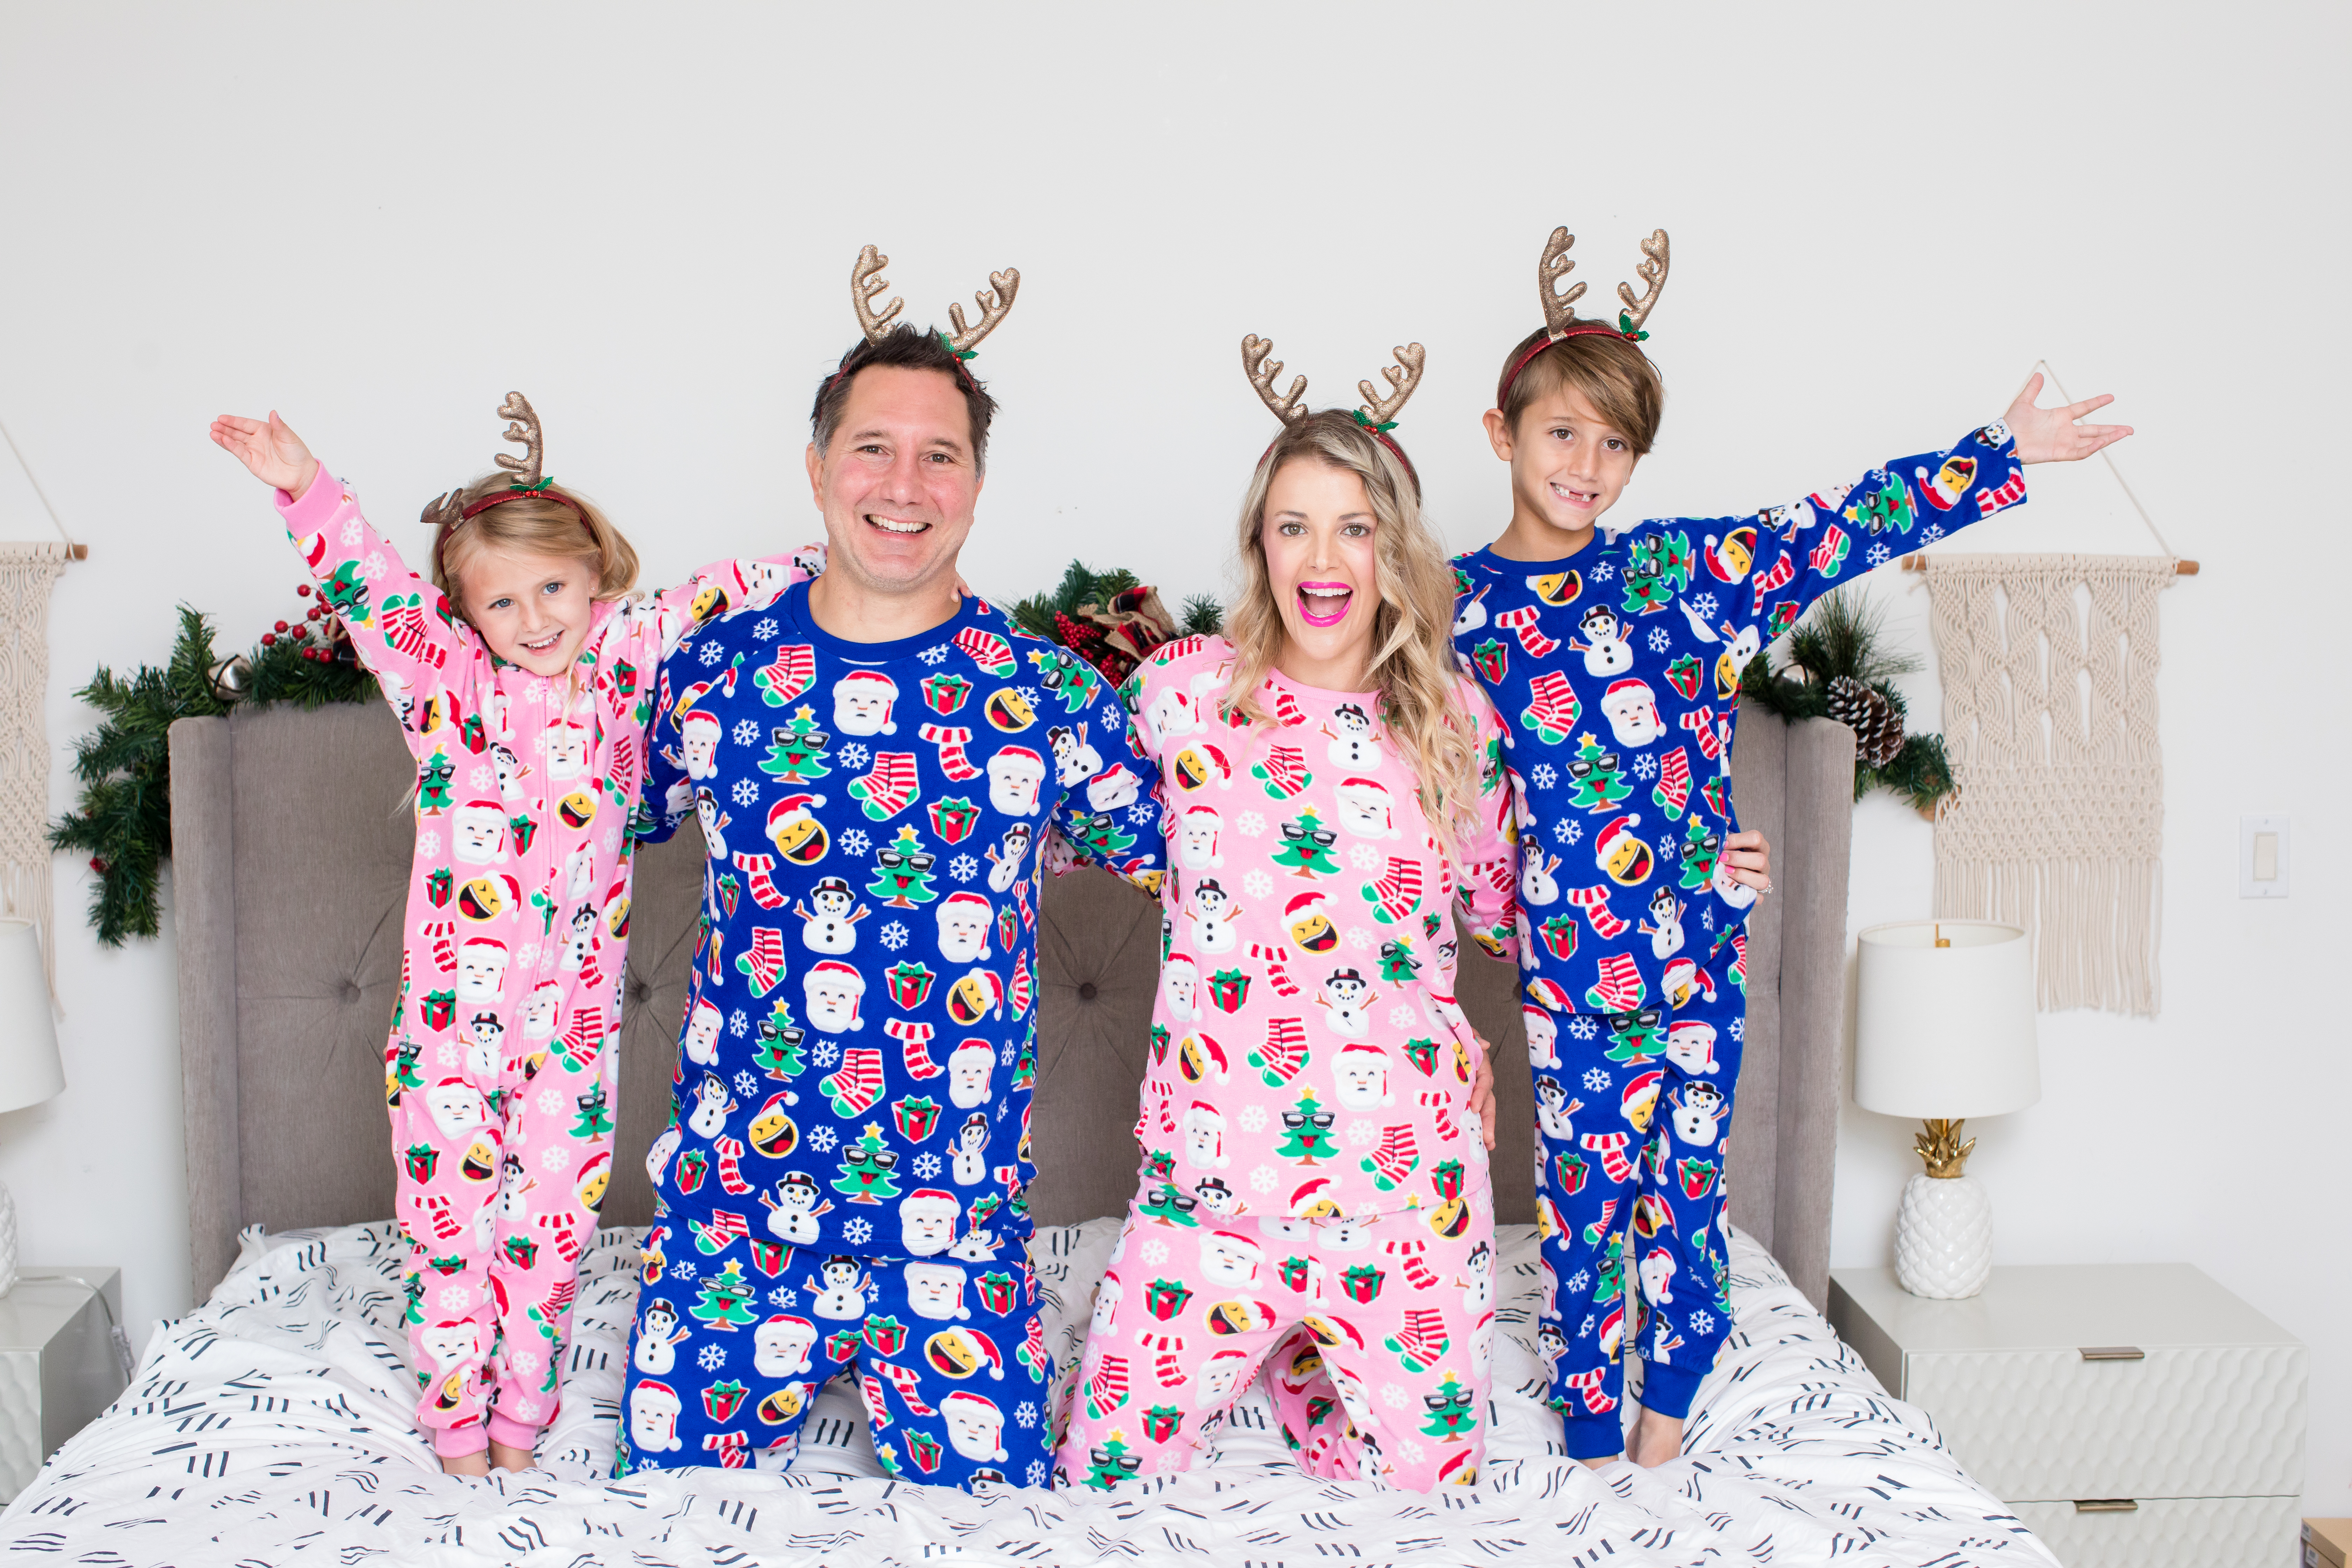 c5021ef75f My Family's Favorite Holiday Tradition: Matching Pajamas! - Rachel ...